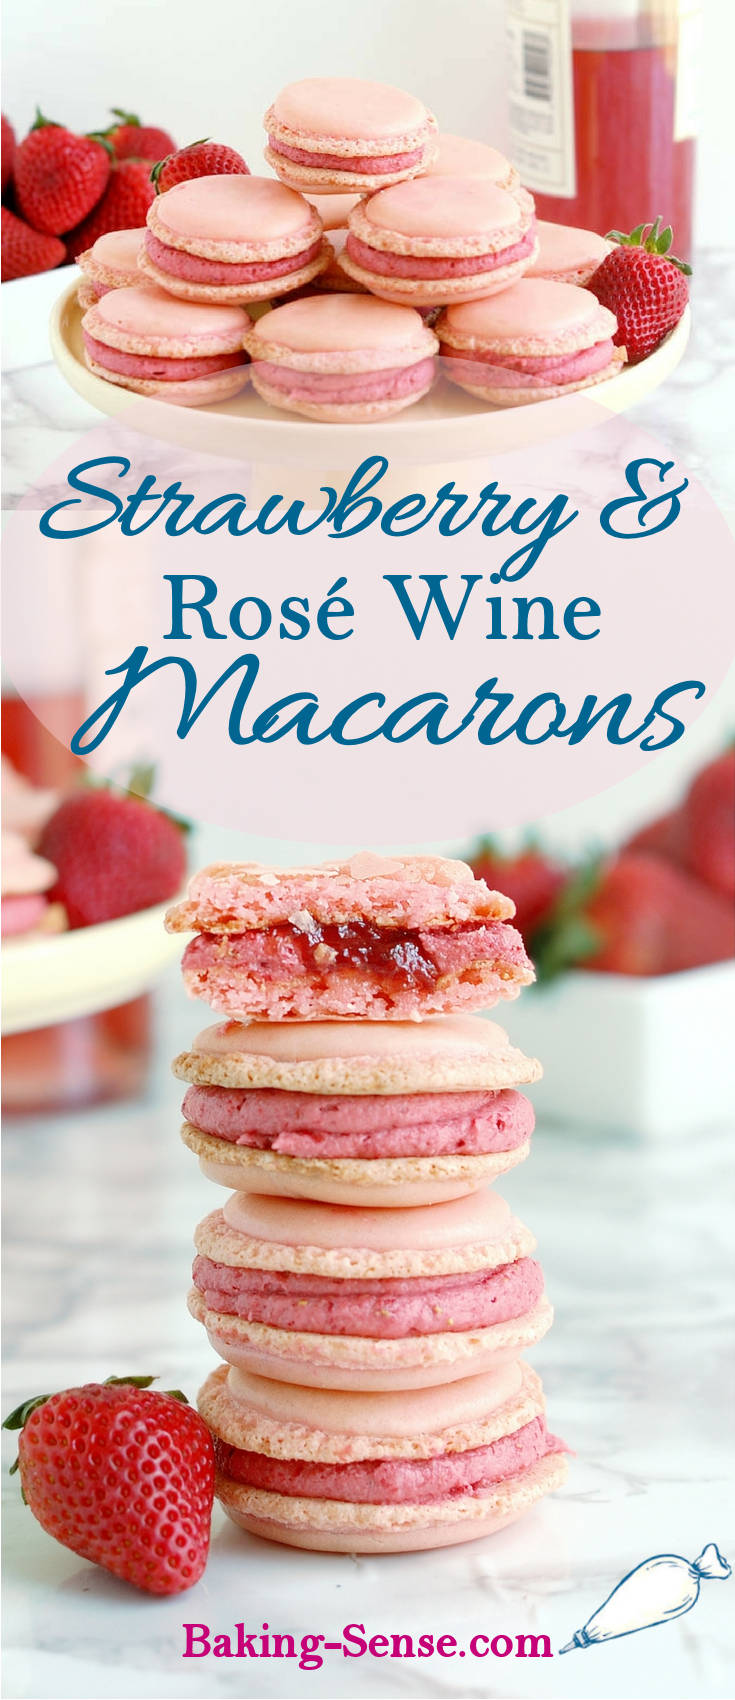 Have you been afraid to make French macarons? I'll show you exactly how the batter should look for macaron success and I'll tell you about the special ingredient I use to get a bold strawberry flavor in the filling. The strawberry flavor is enhanced with an infusion of rosé wine. #best #video #how-to #authentic